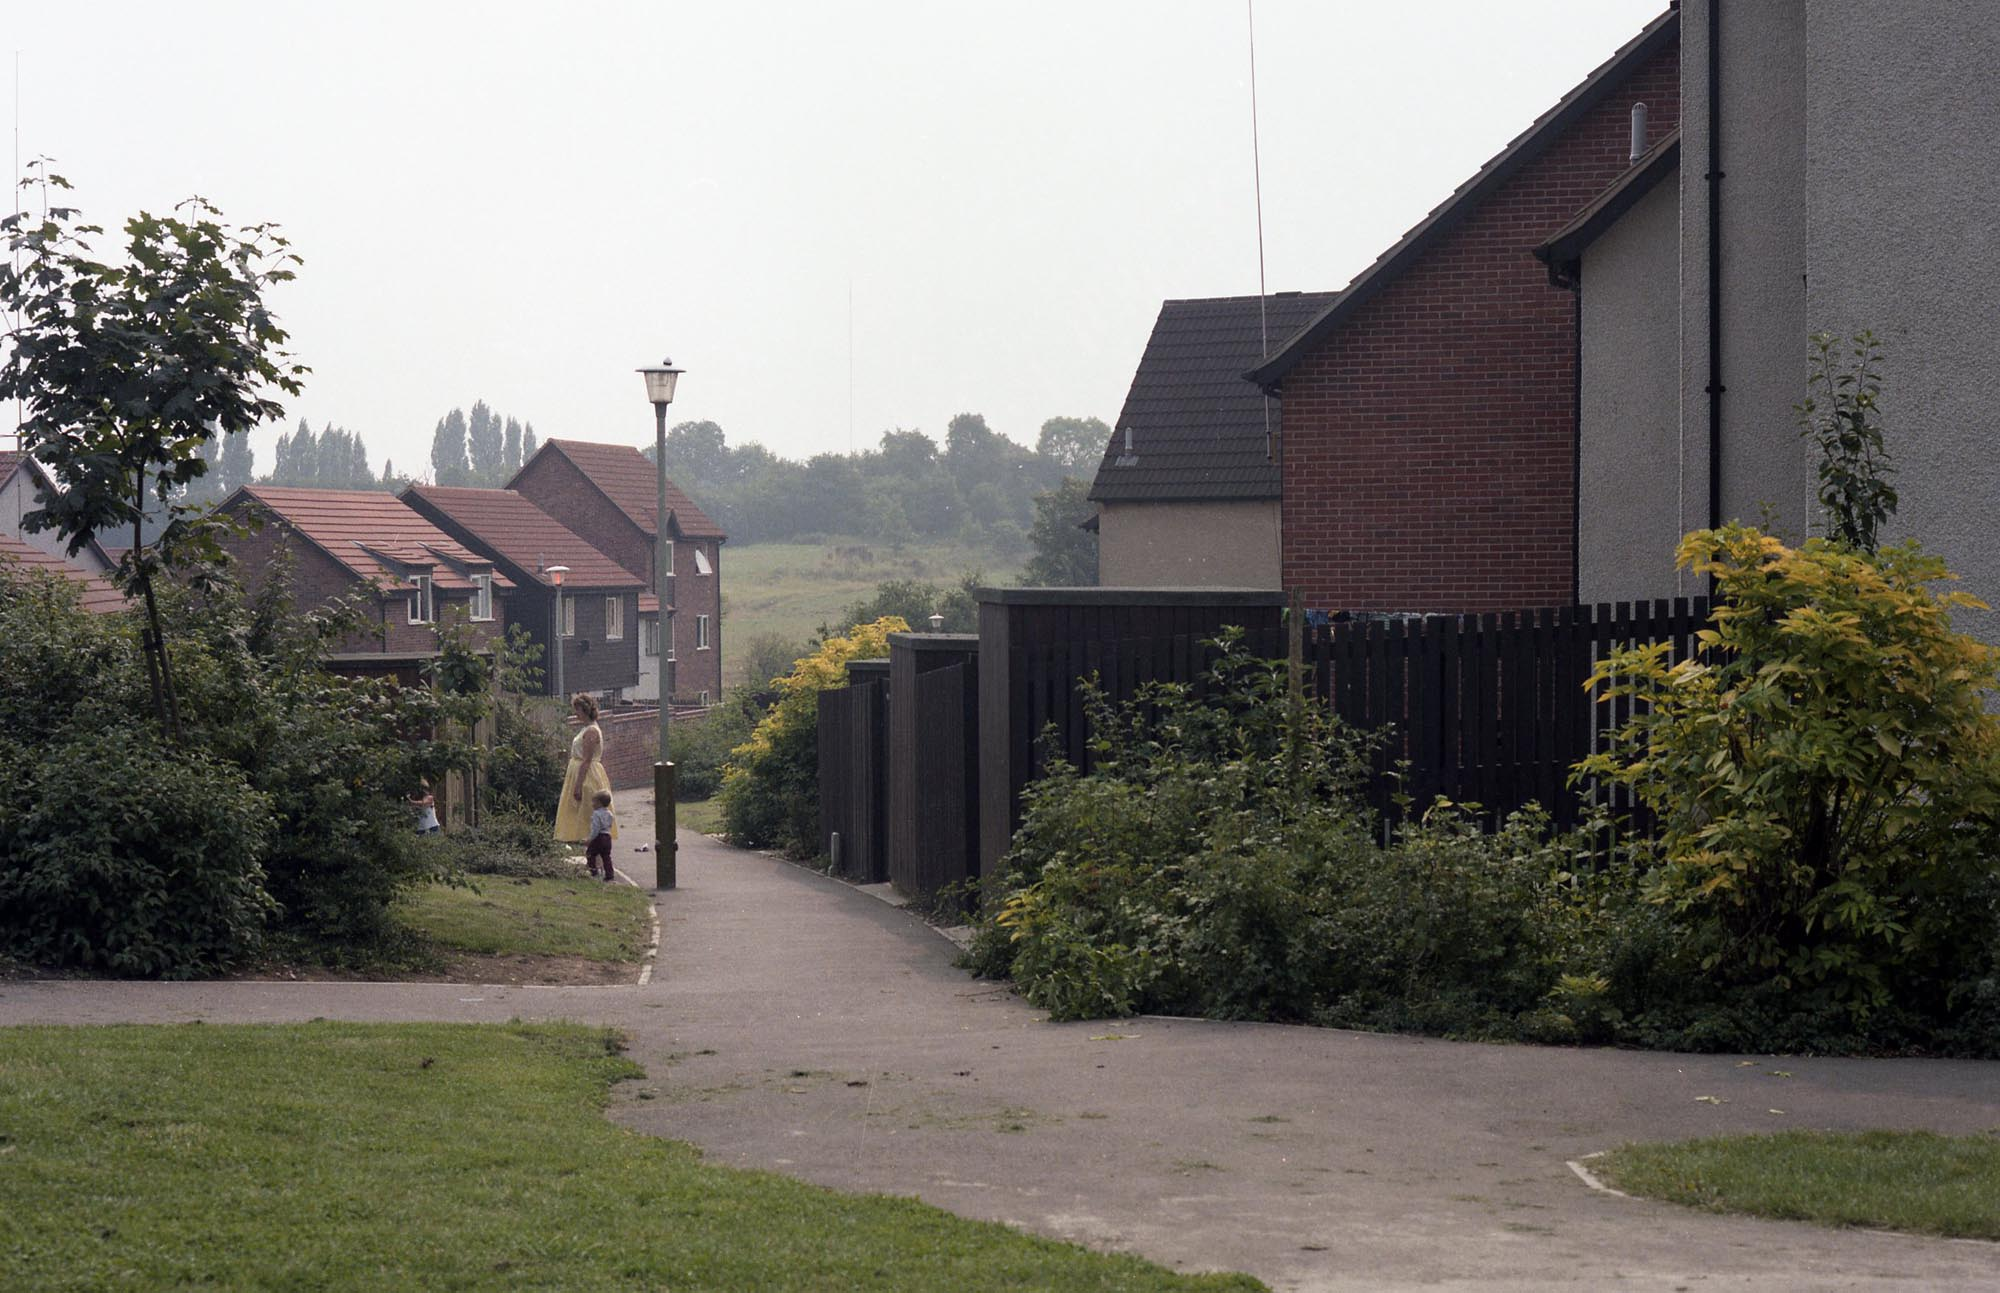 A more recent example social housing in Beaumont Leys, seen here in the 1990s -